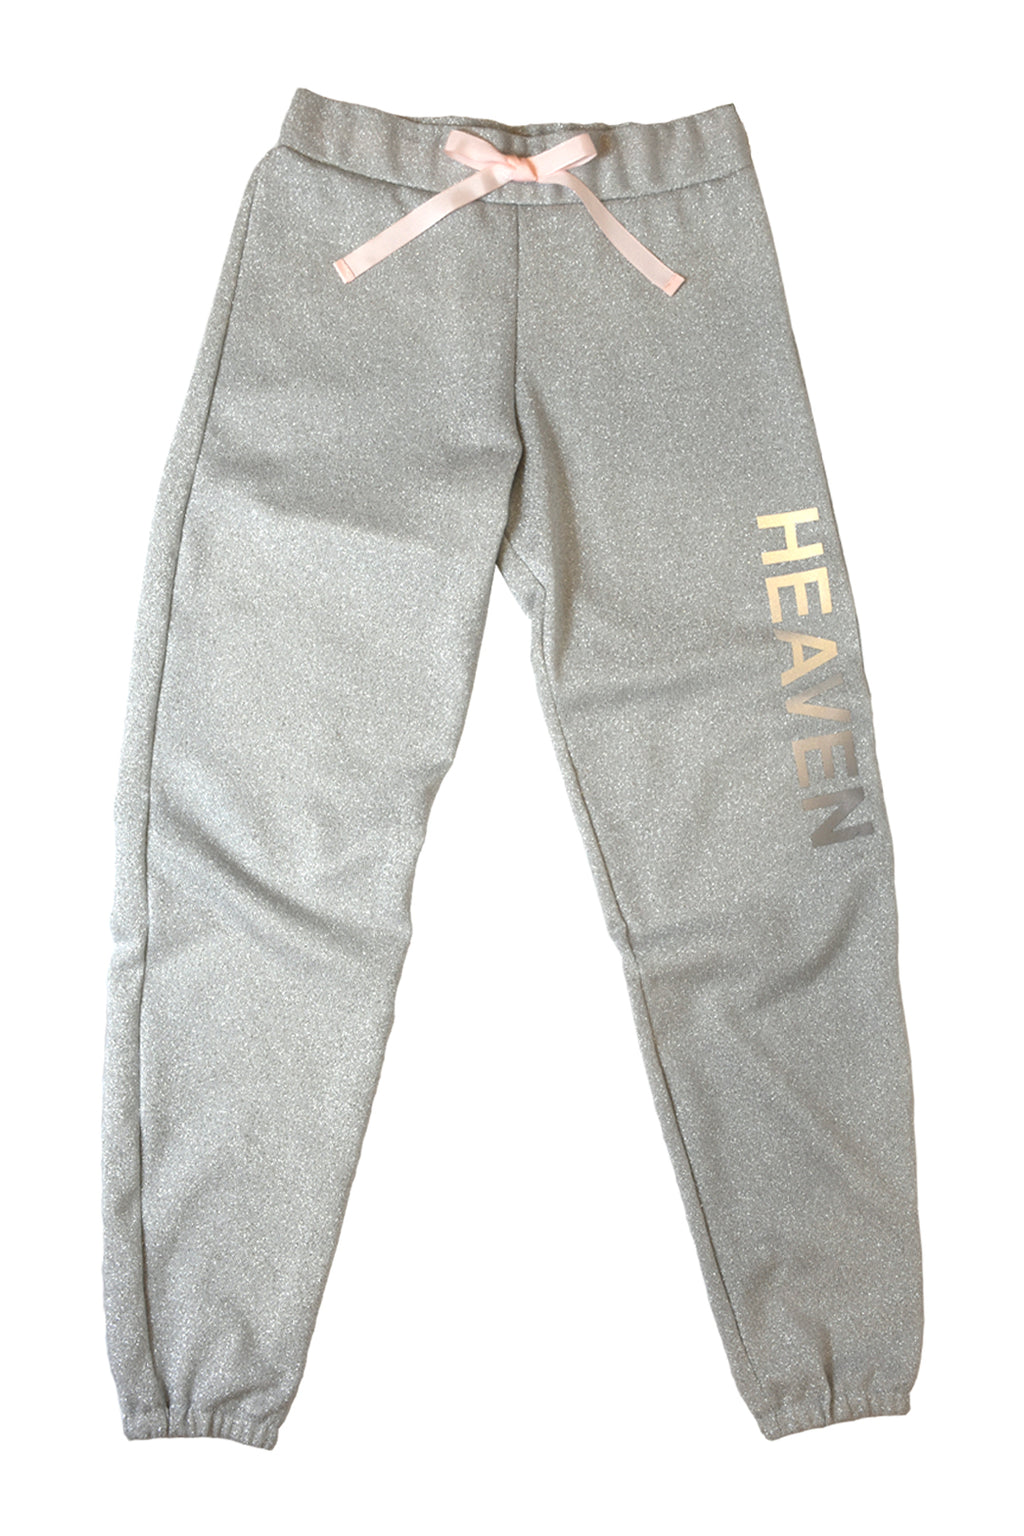 HEAVEN TRACK PANT – 1 OF 1